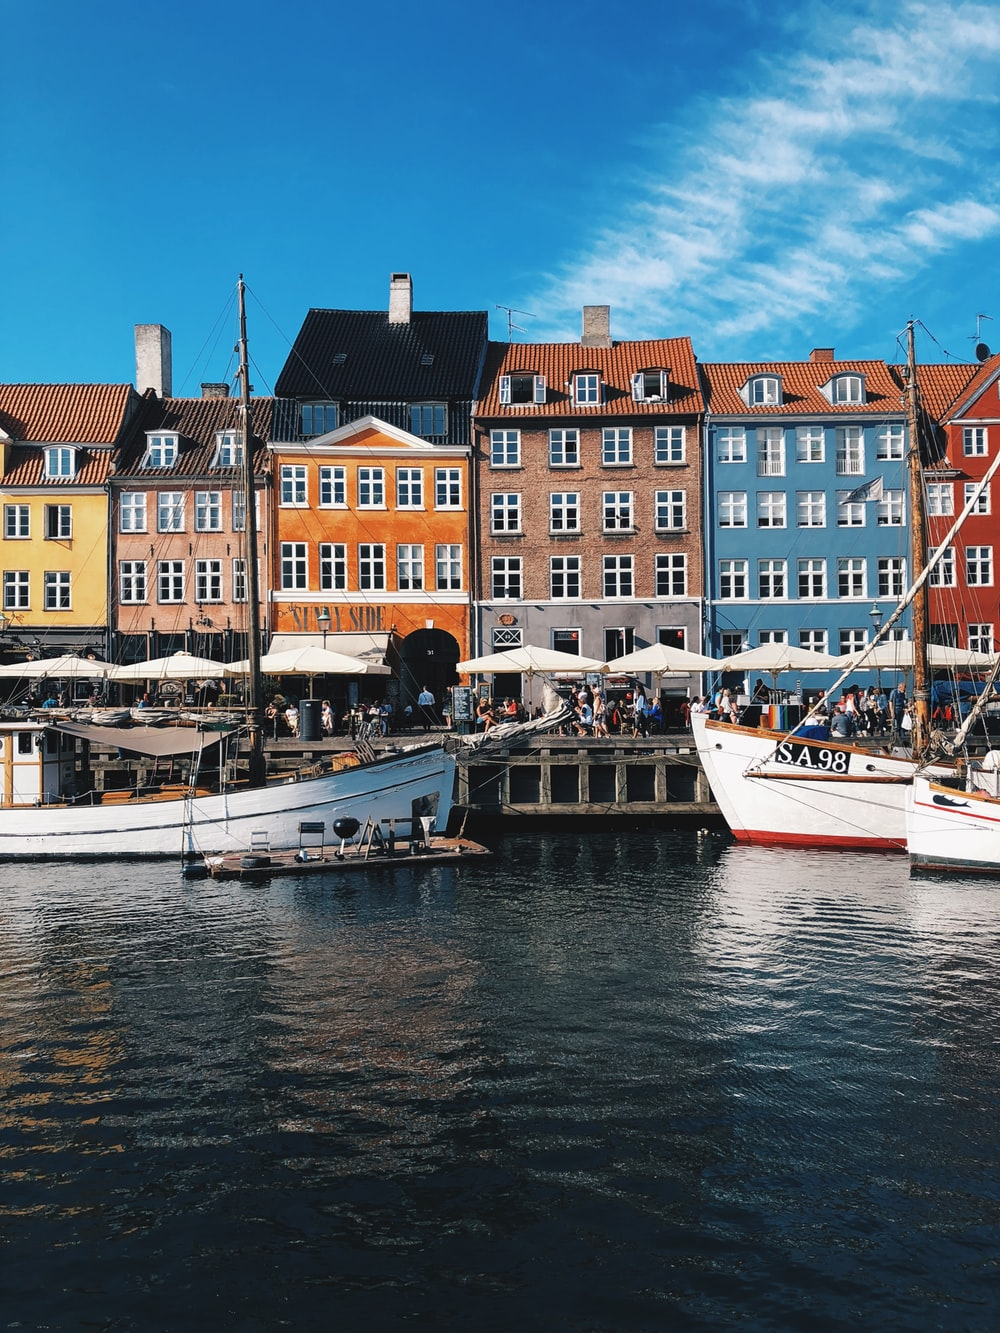 Copenhagen Pictures [HD] [Stunning] Download Images on 1000x1333